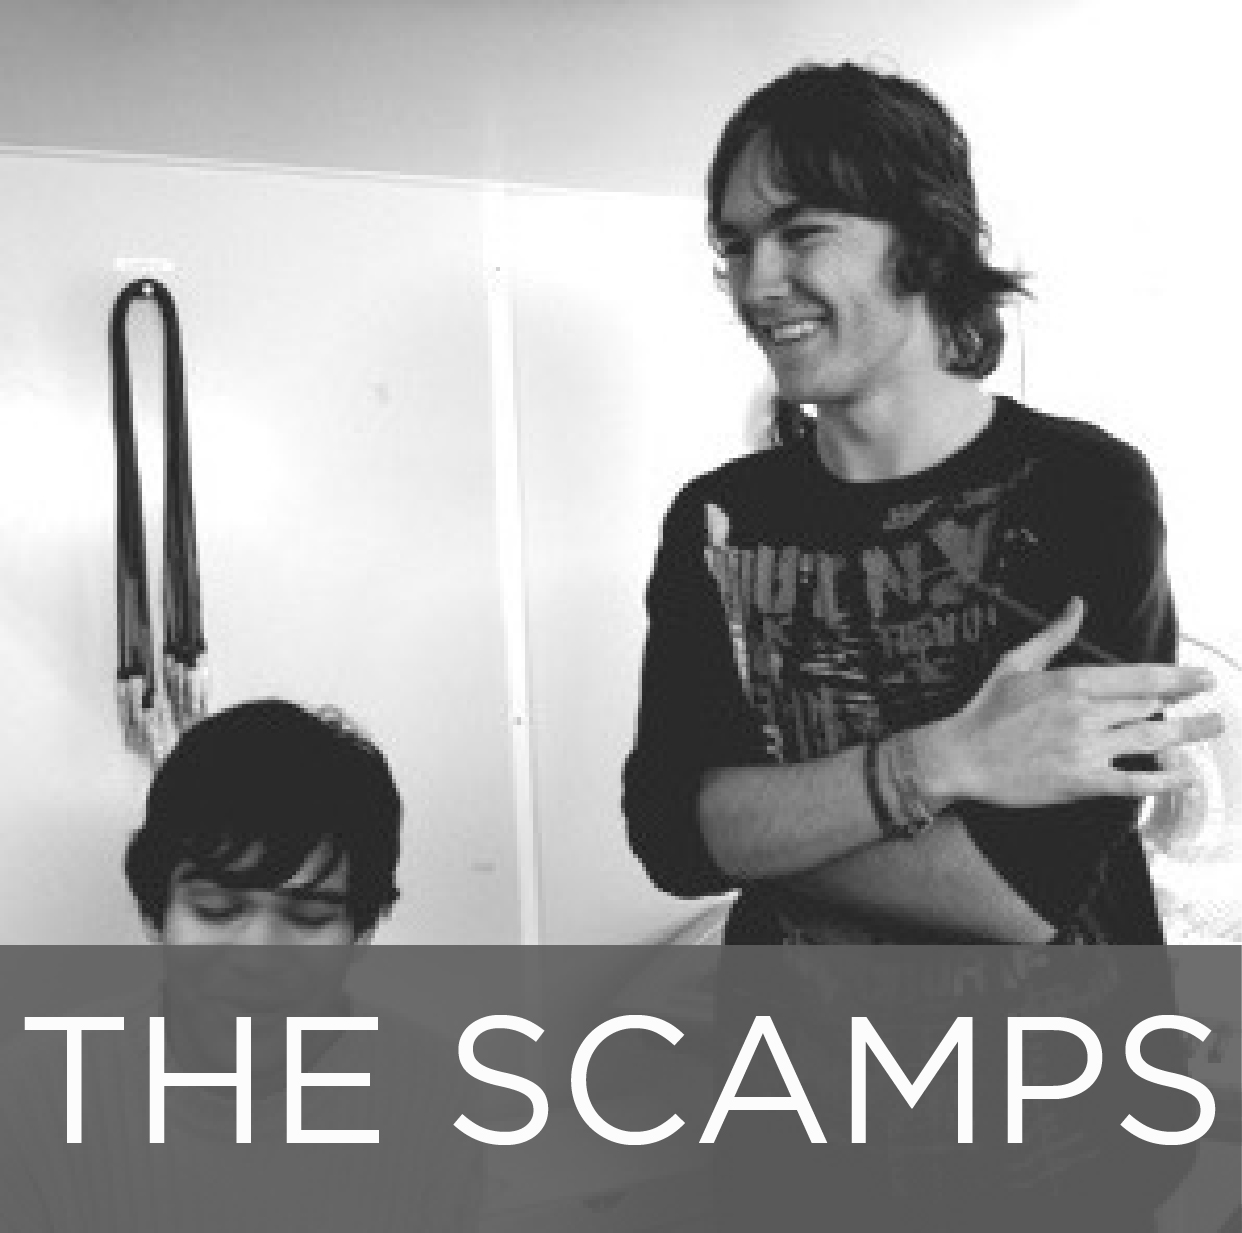 The Scamps